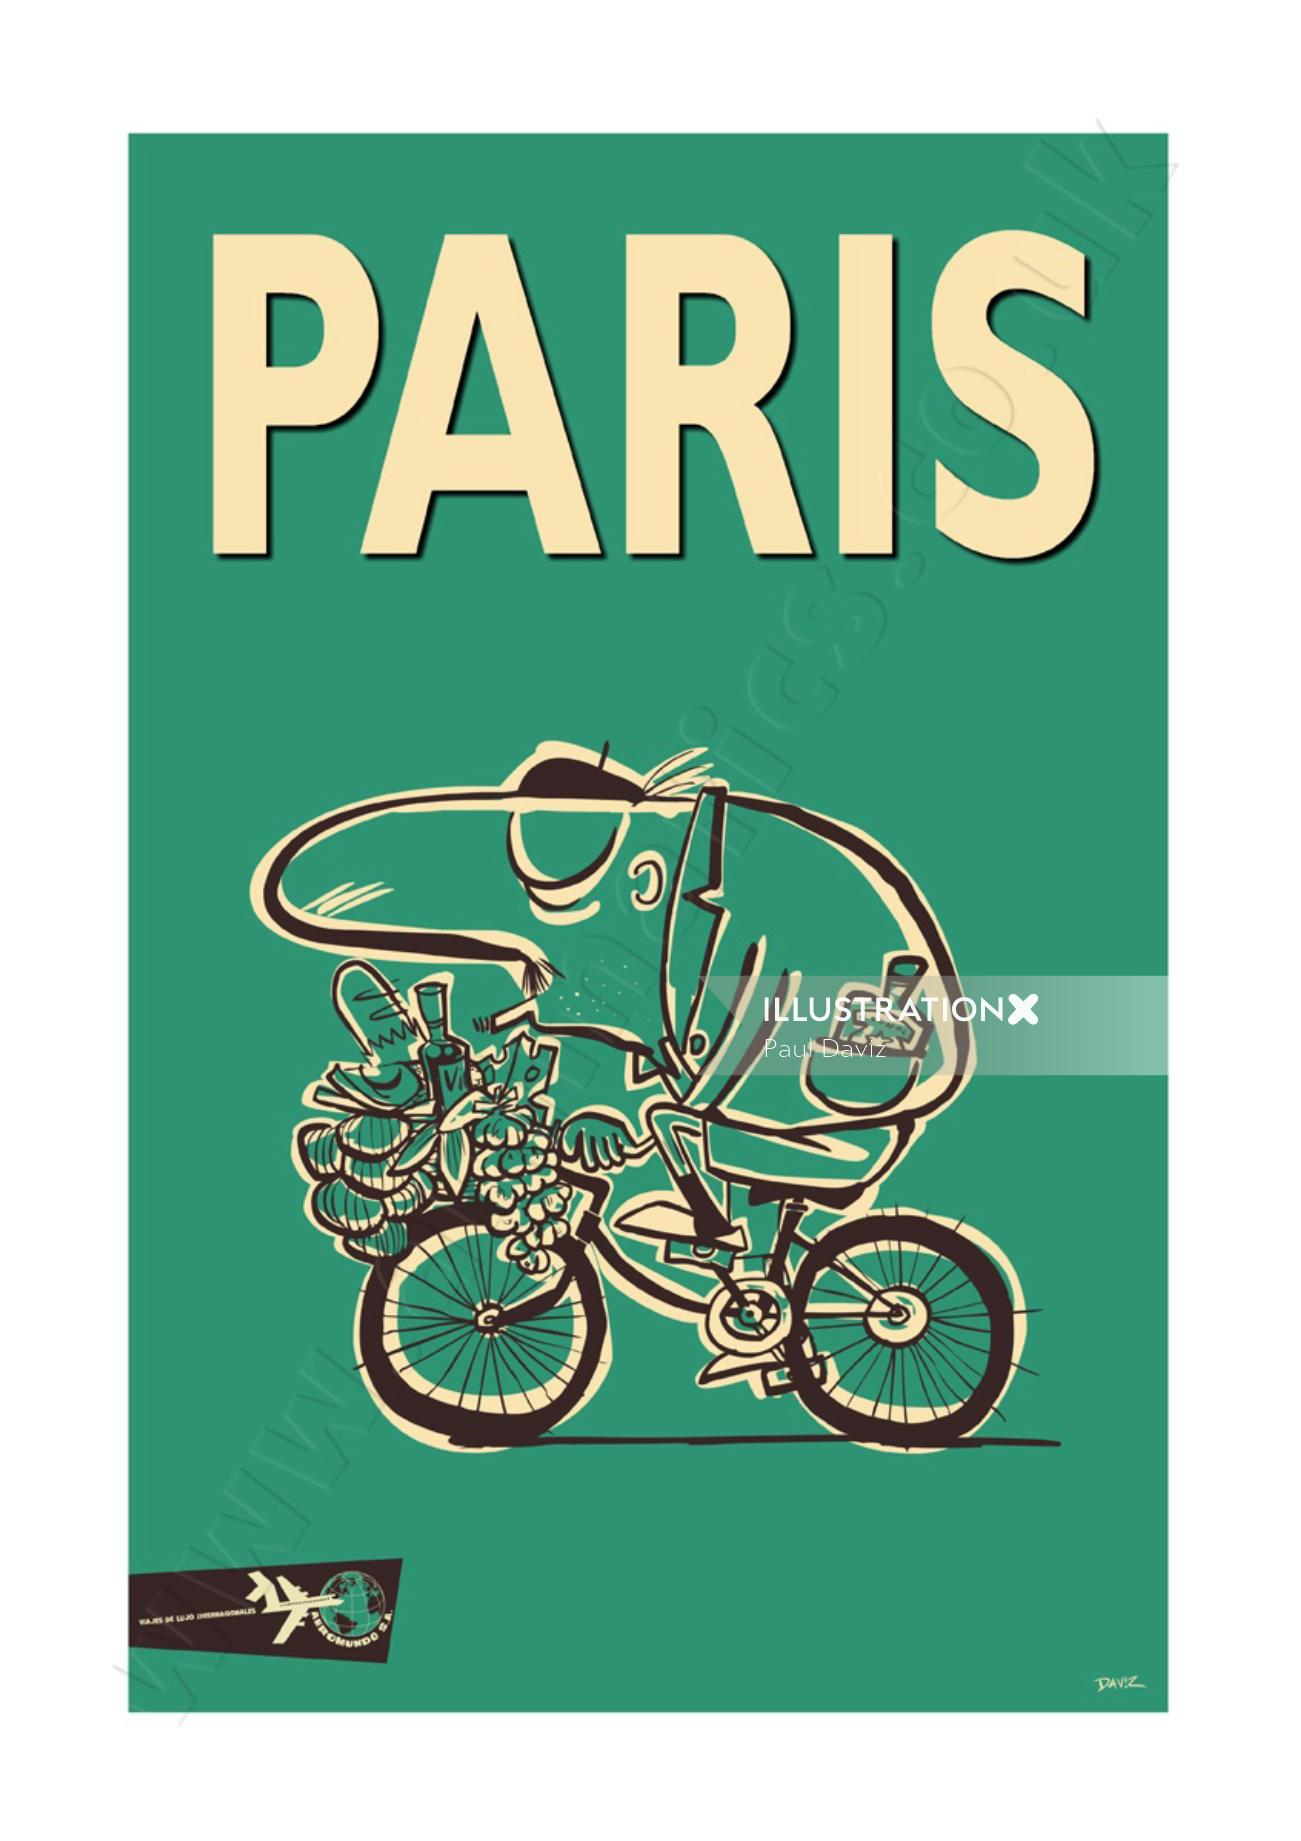 Paris Travel Poster AeroMundo